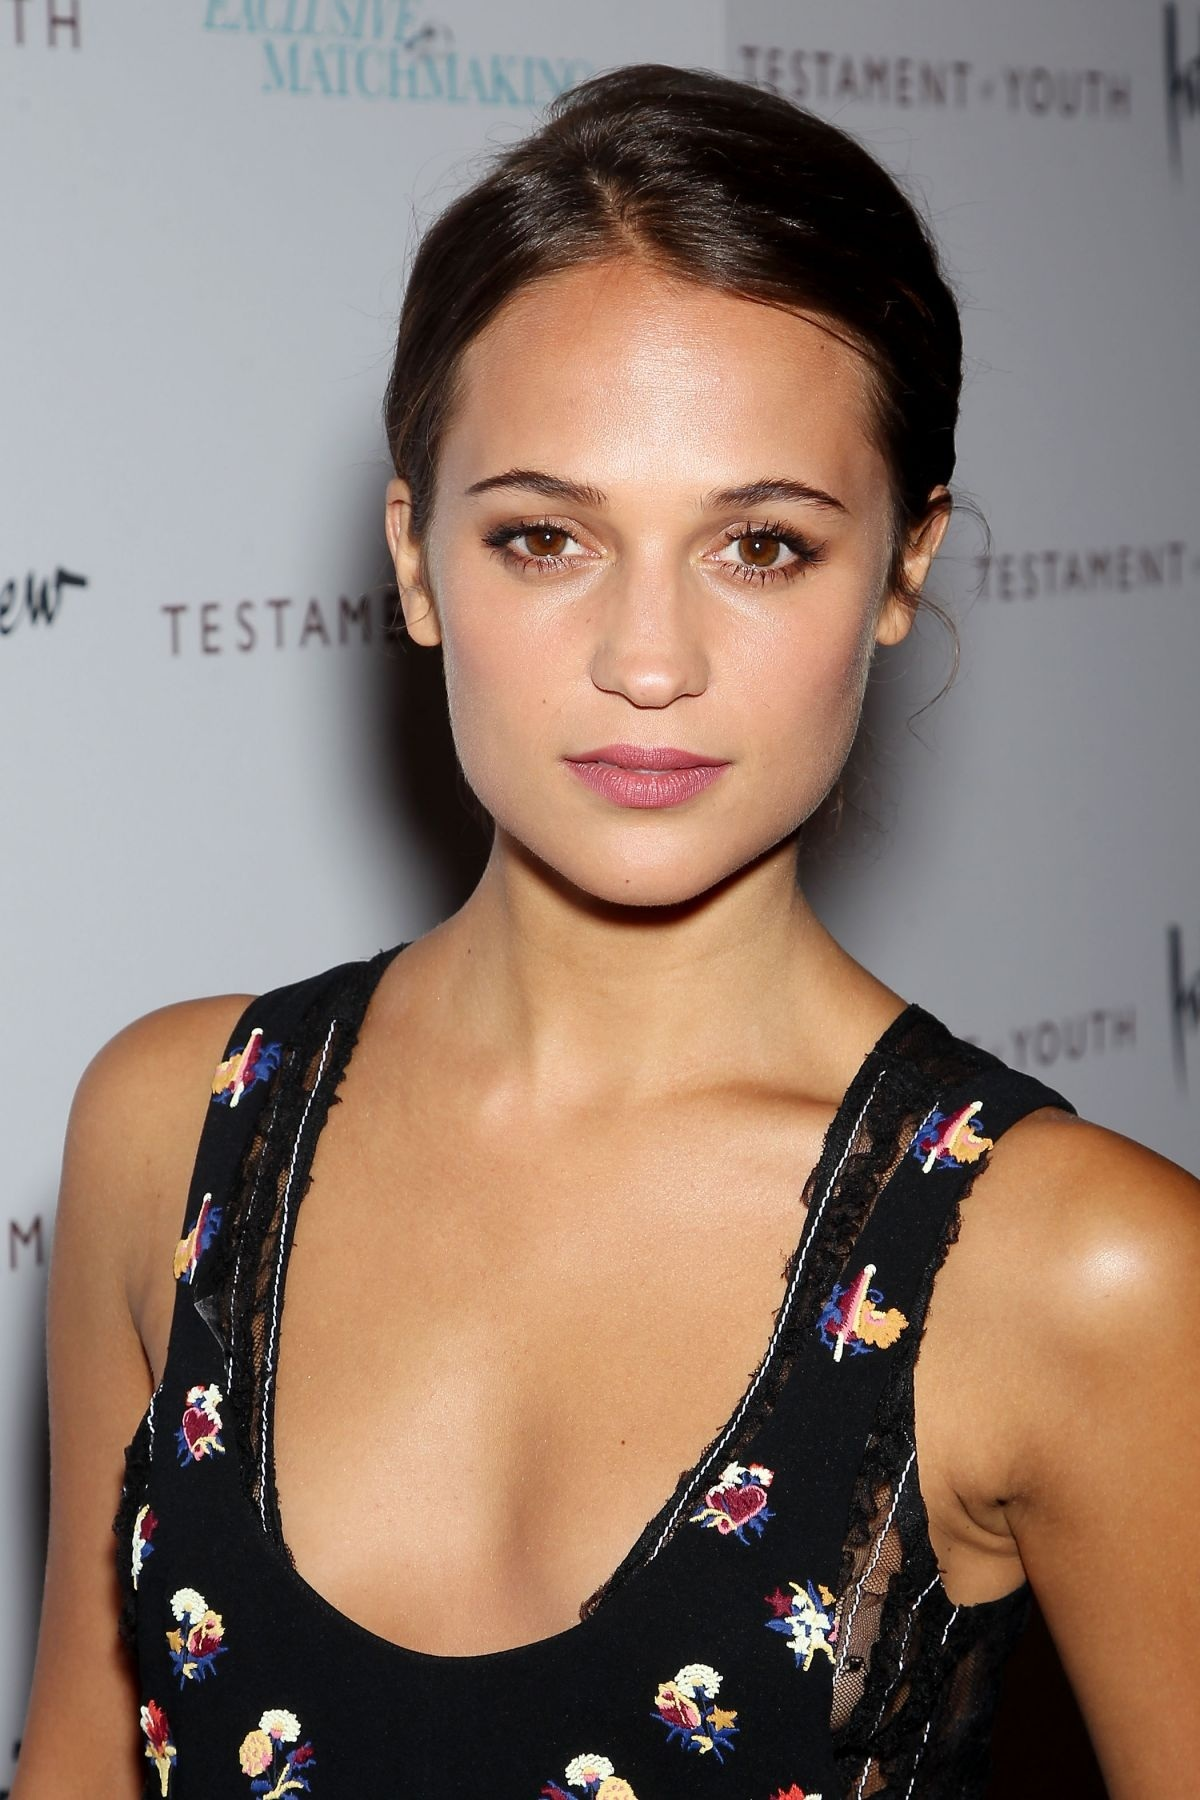 alicia-vikander-hot-pics